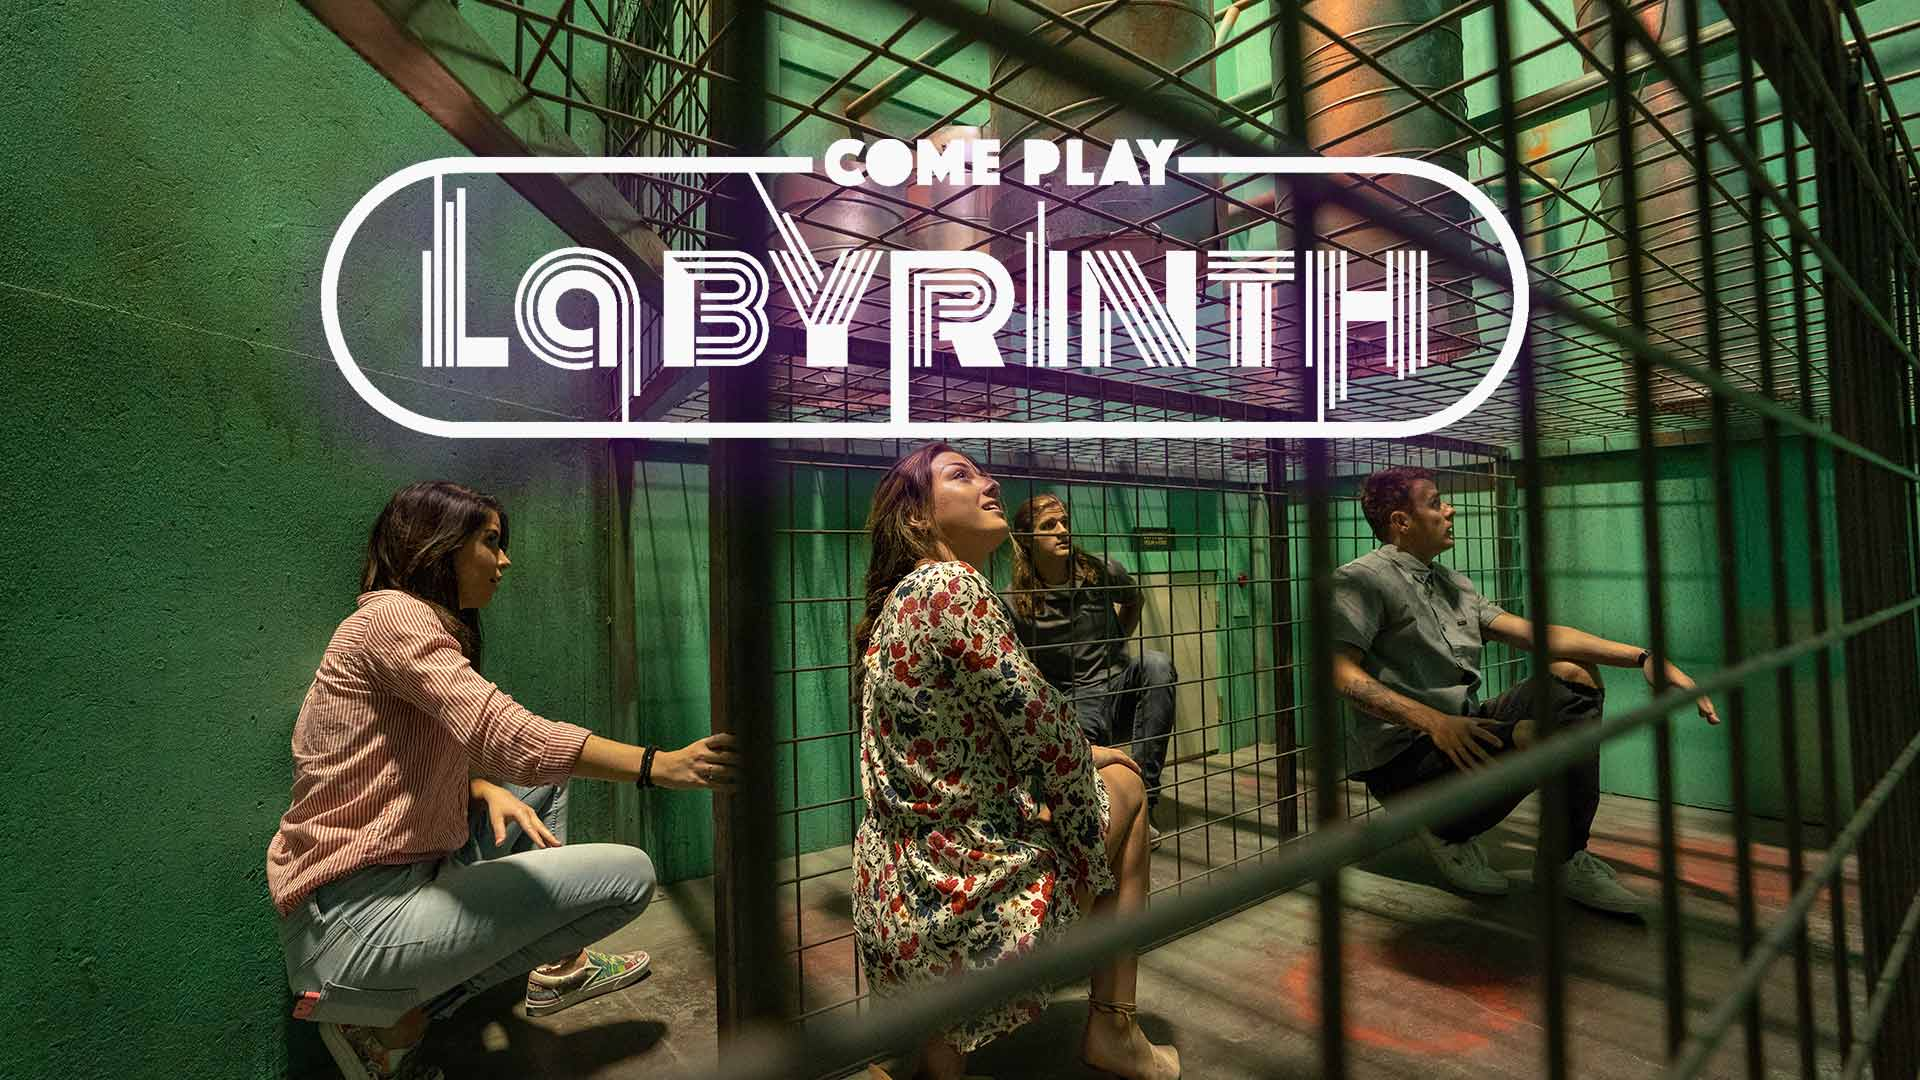 Labyrinth Reality Games - Labyrinth is an experience unlike any other. Each of our 59 mini-games, called Levels, creates a unique and engaging environment full of unfamiliar puzzles and obstacles for you and your group to solve.Learn more at Labyrinthrealitygames.com